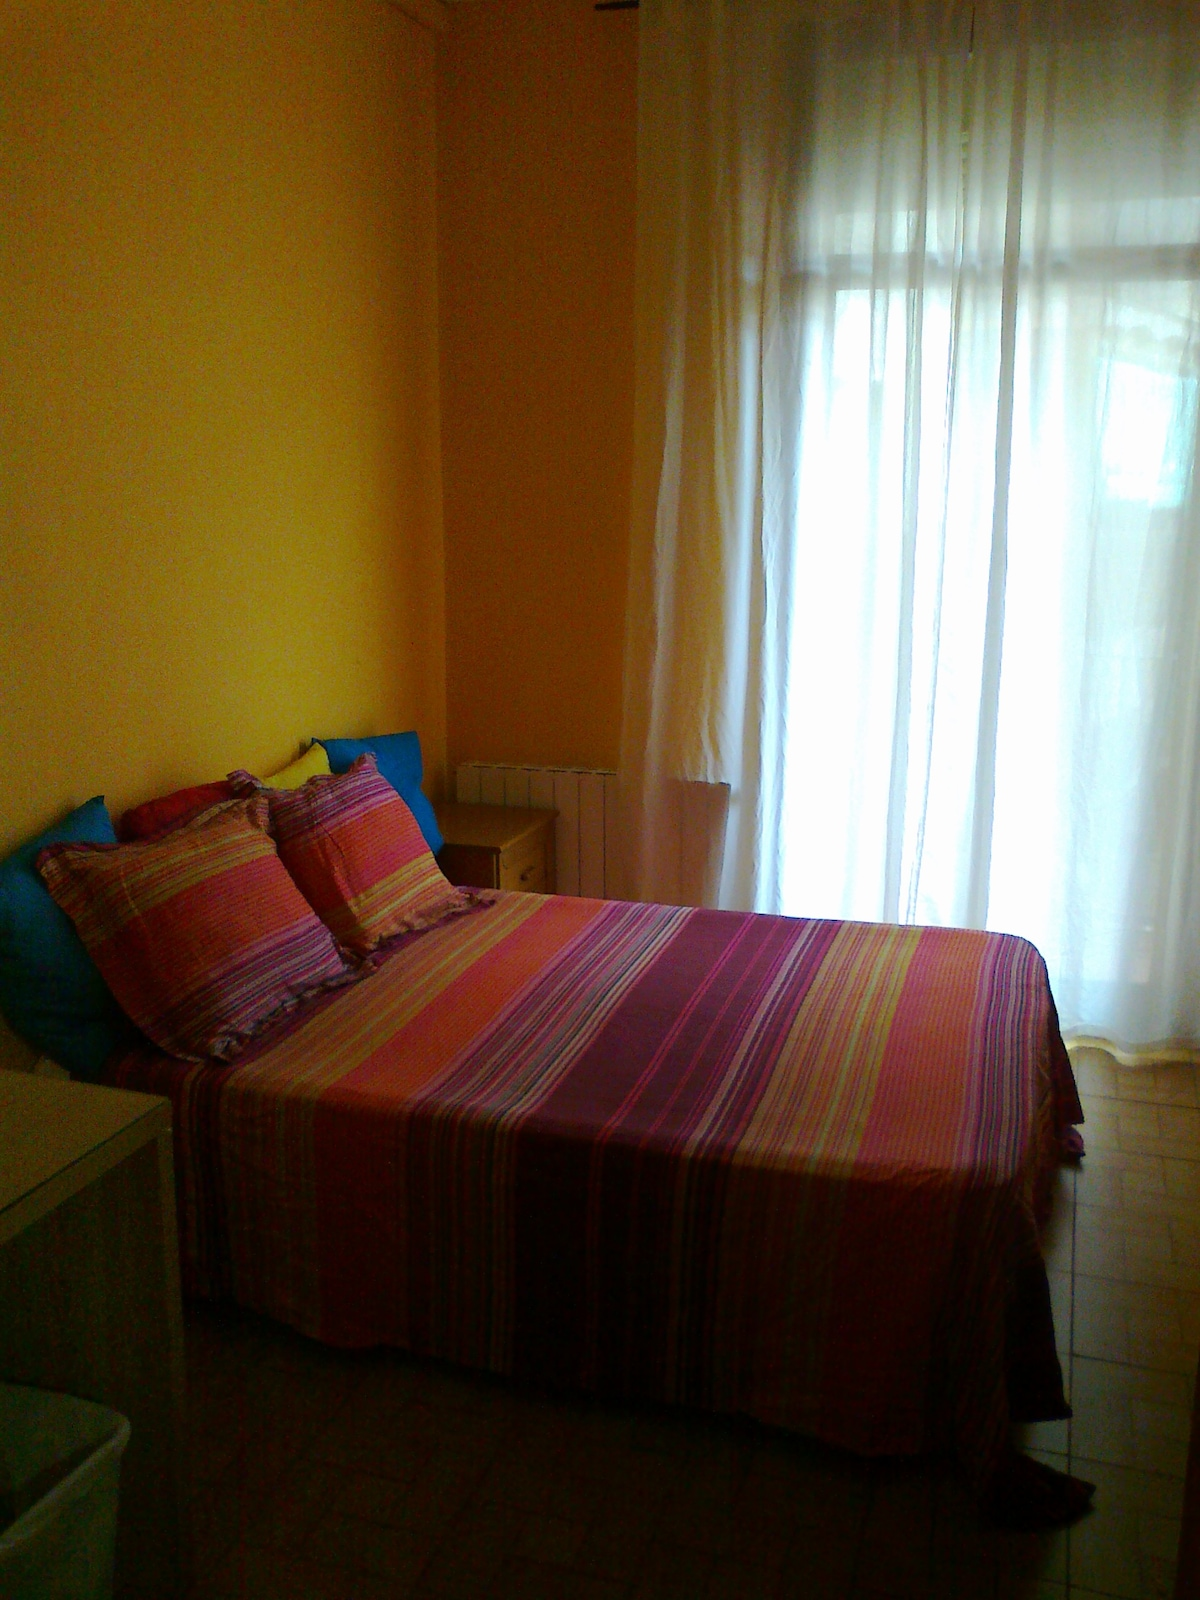 SPACIOUS and COMFORTABLE ROOM: double bed